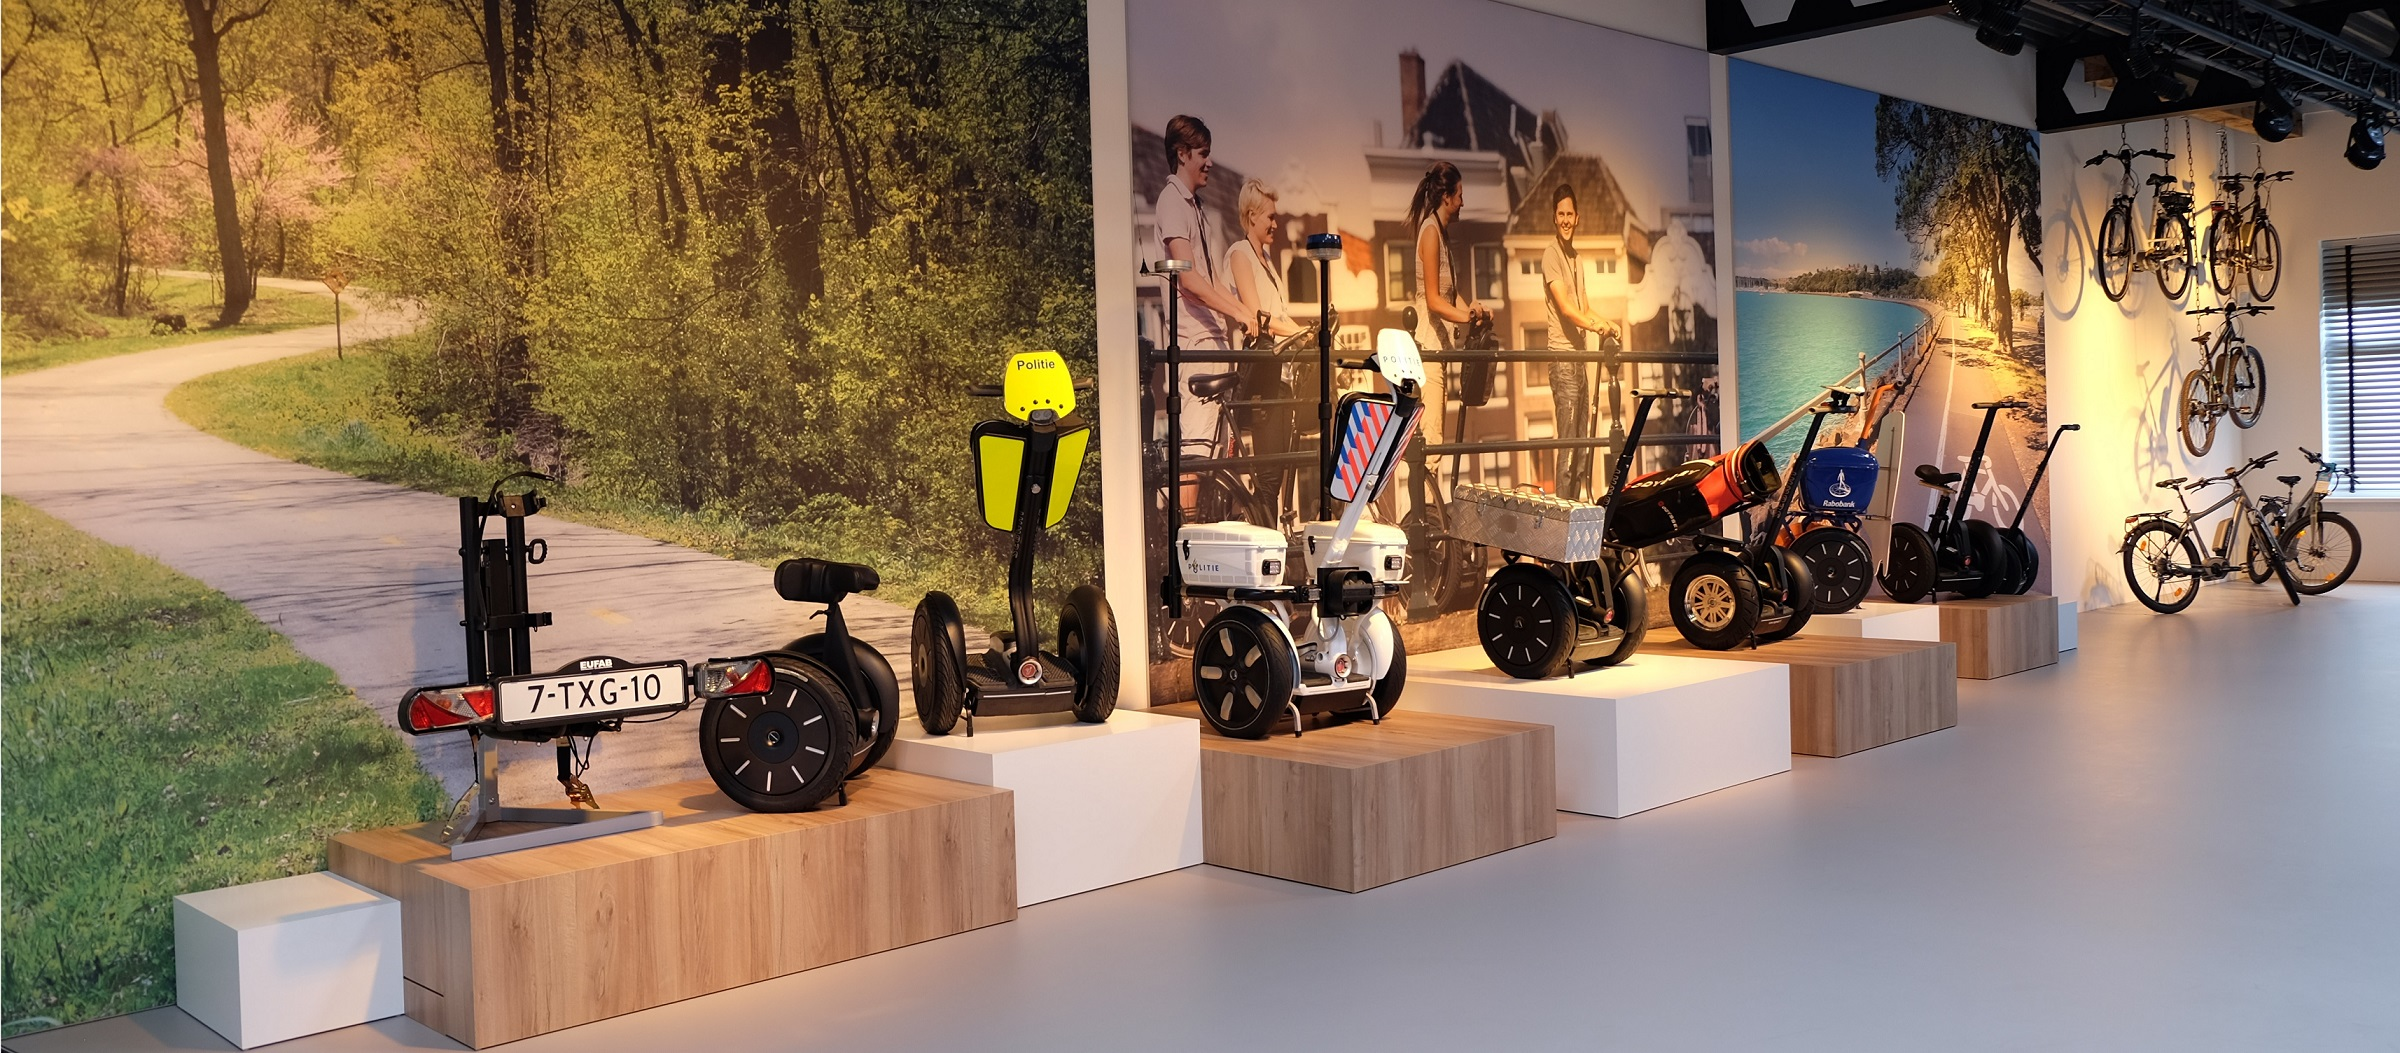 E-Milers-com-Segway-showroom-small